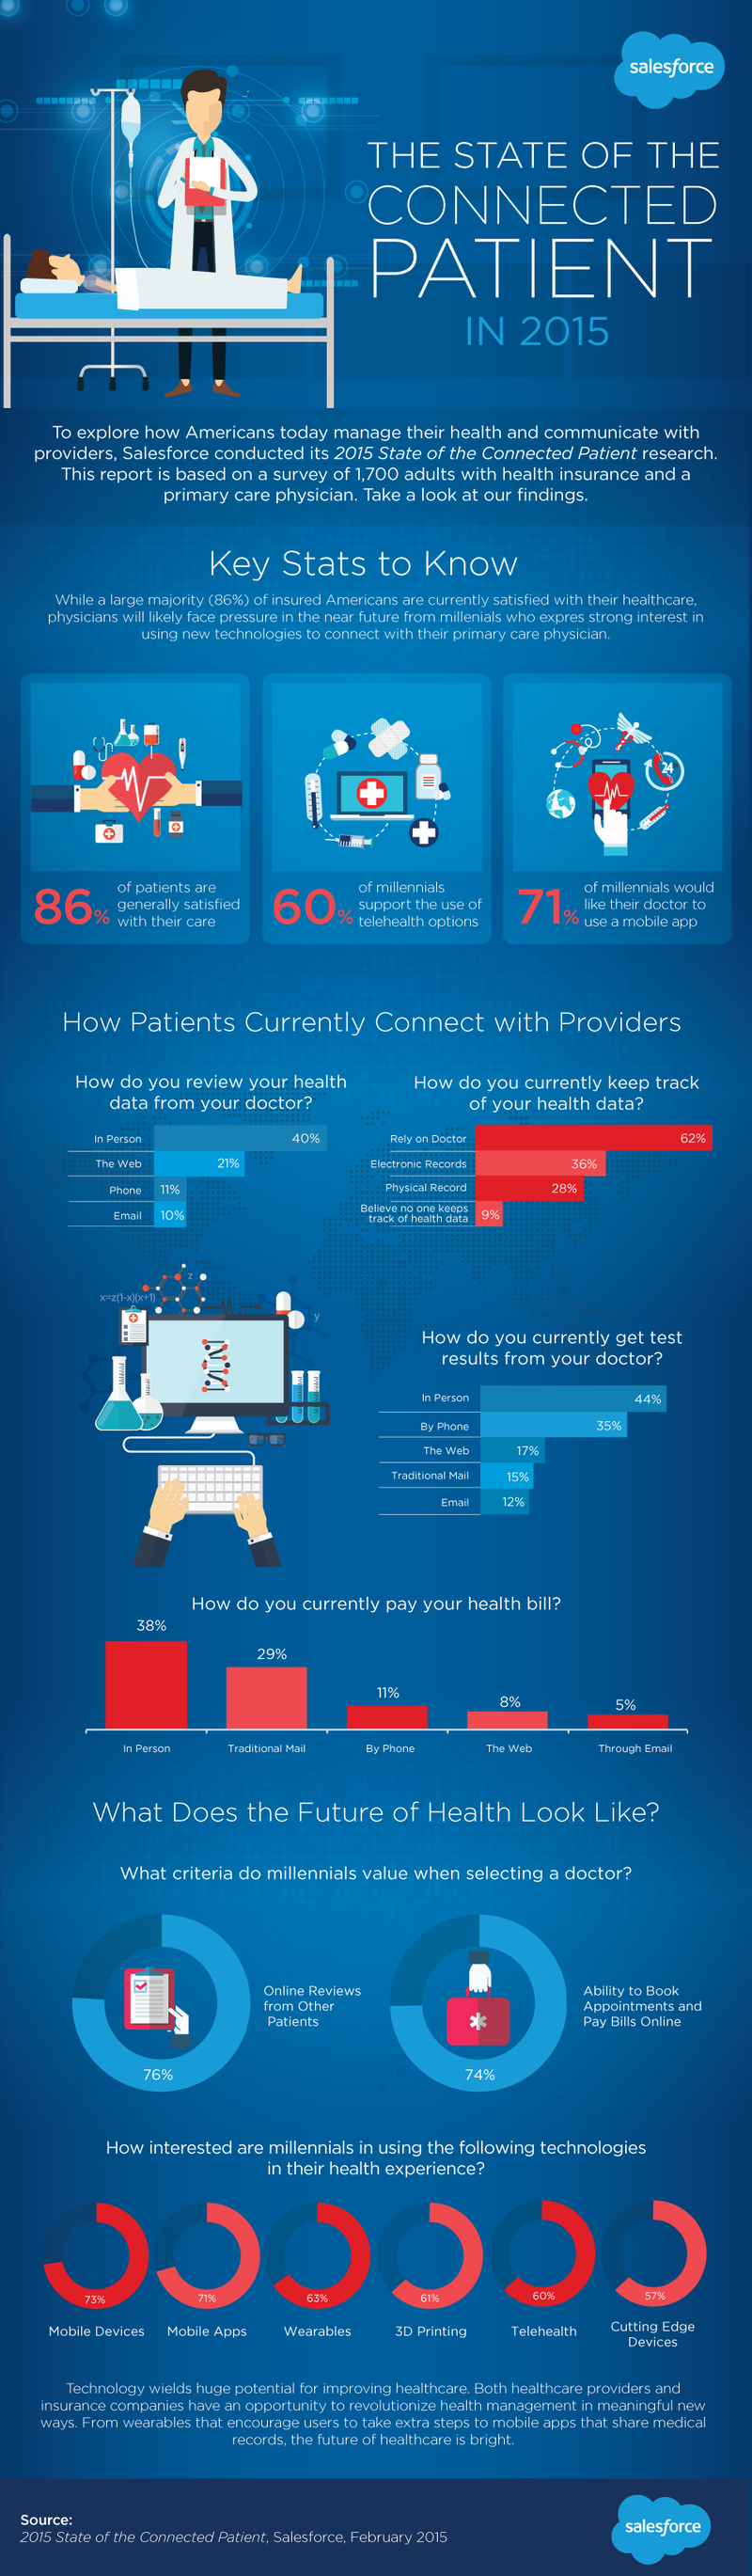 The State of the Connected Patient 2015